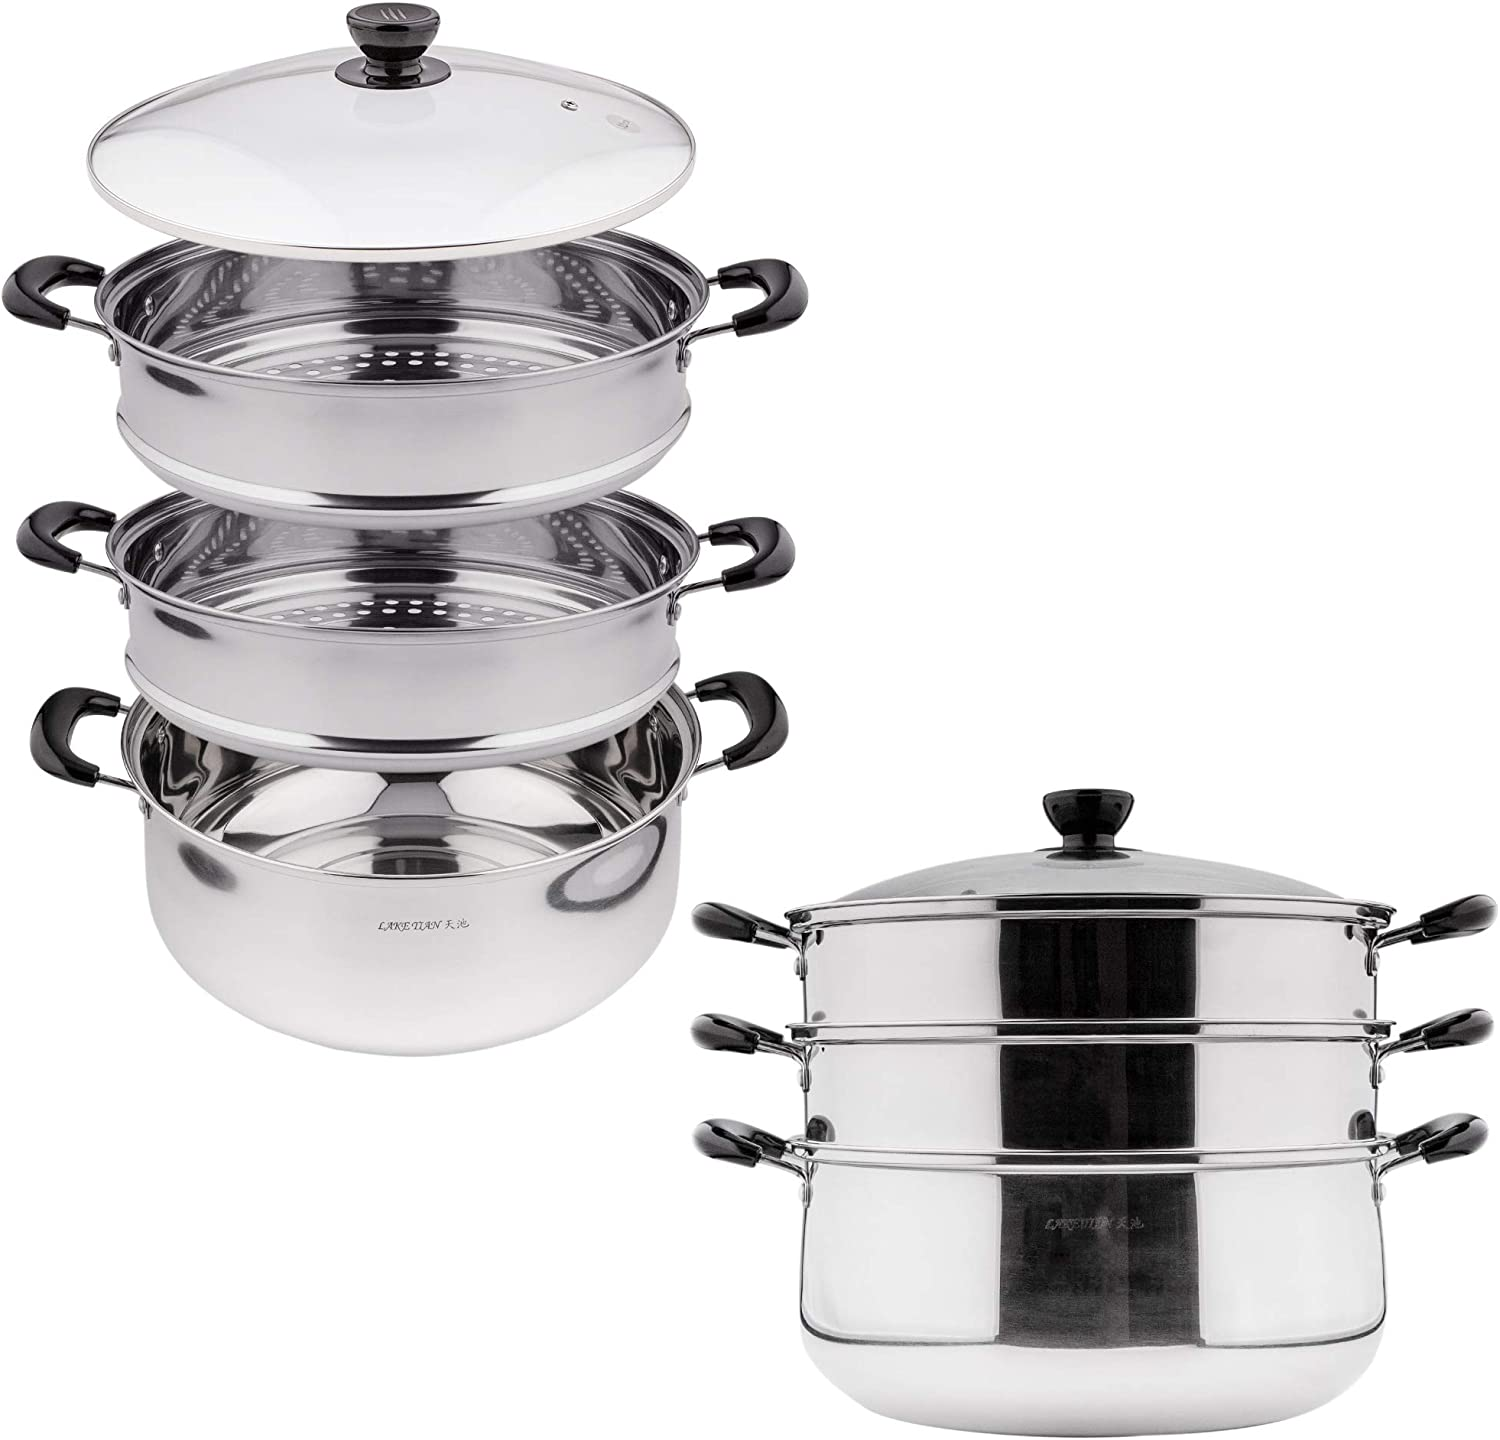 3 Tier Stainless Steel Steamer Pot For Cooking With Stackable Pan Insert, Food Steamer, Vegetable Steamer Cooker, Steamer Cookware Pot/Saucepan with Glass Lid, Multilayer By Lake Tian (28cm/11in)